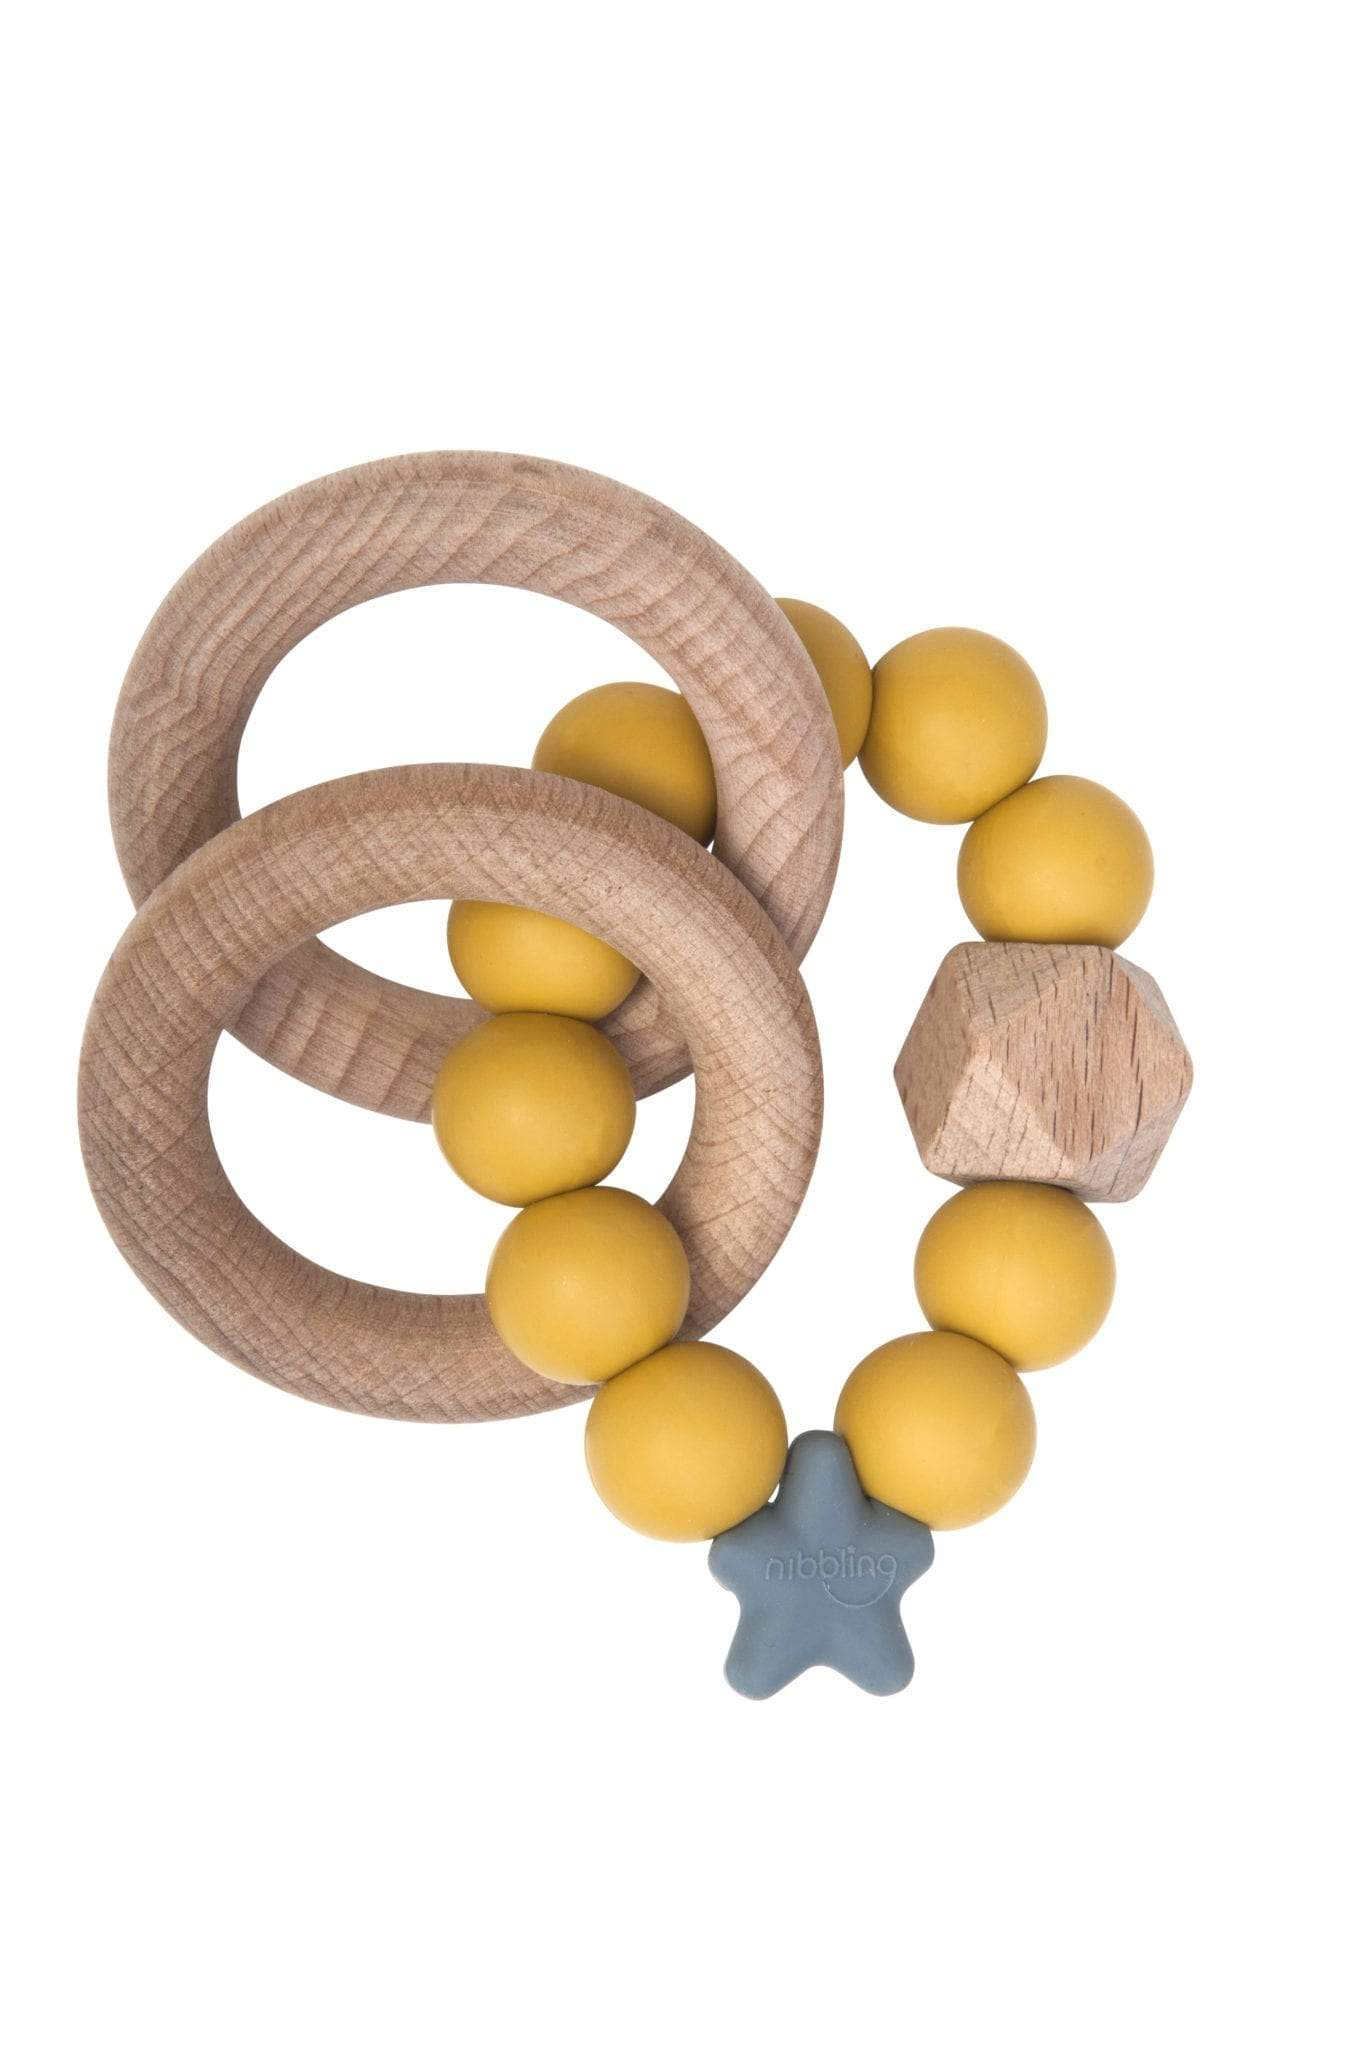 Nibbling Silicone & Wood Rattle - Mustard